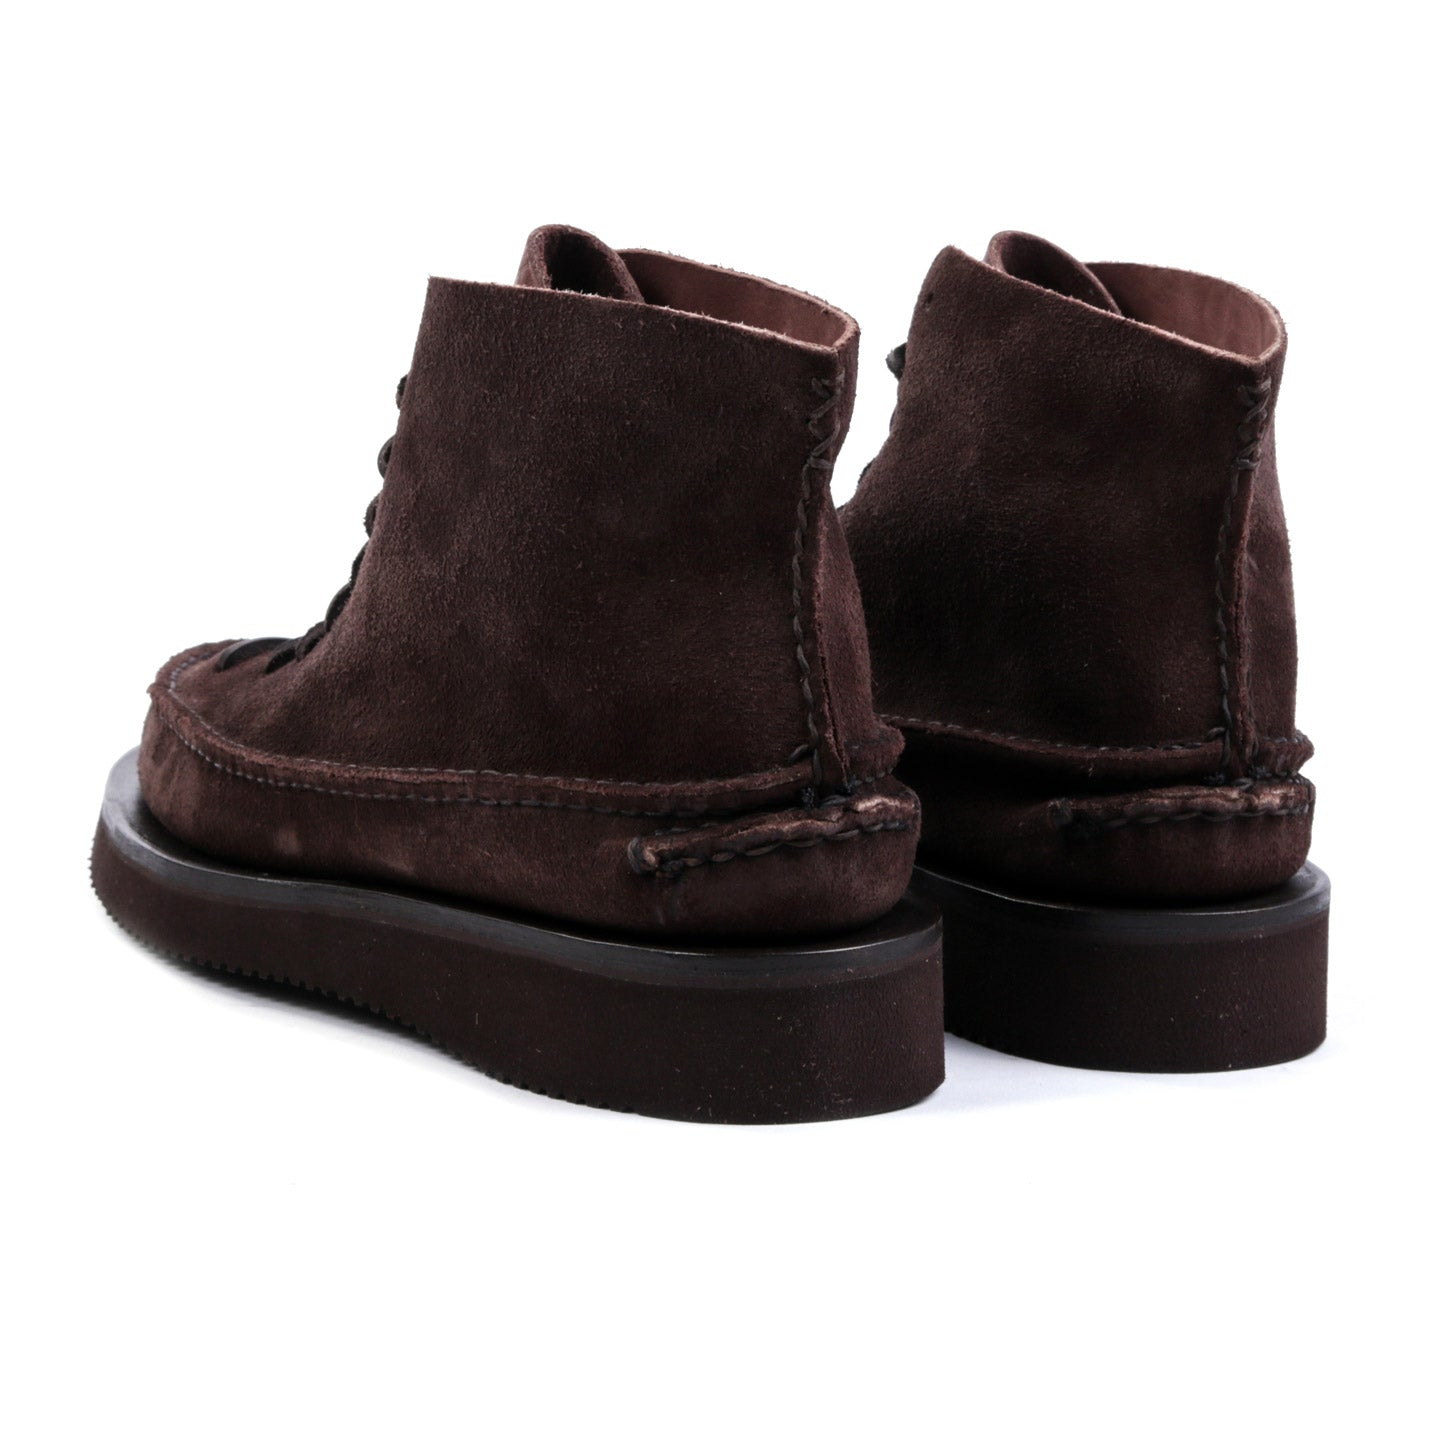 YUKETEN ALL HANDSEWN SNEAKER MOC HI FO DARK BROWN